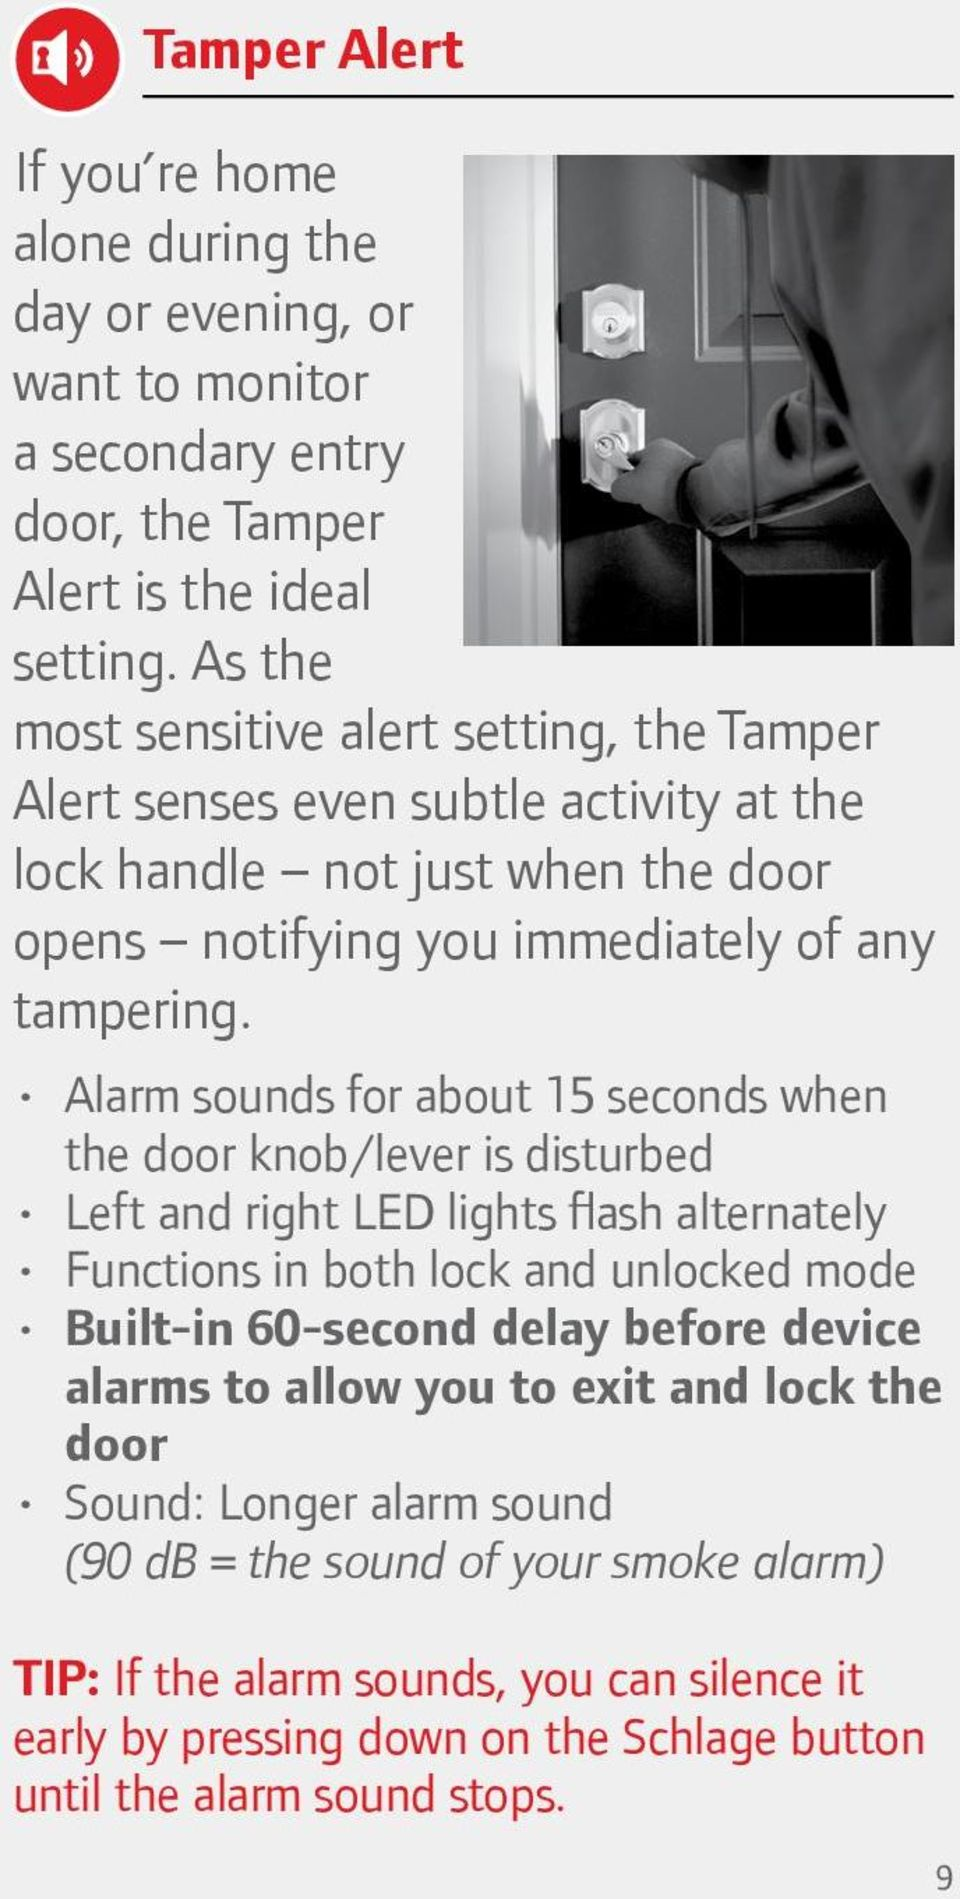 Alarm sounds for about 15 seconds when the door knob/lever is disturbed Left and right LED lights flash alternately Functions in both lock and unlocked mode Built-in 60-second delay